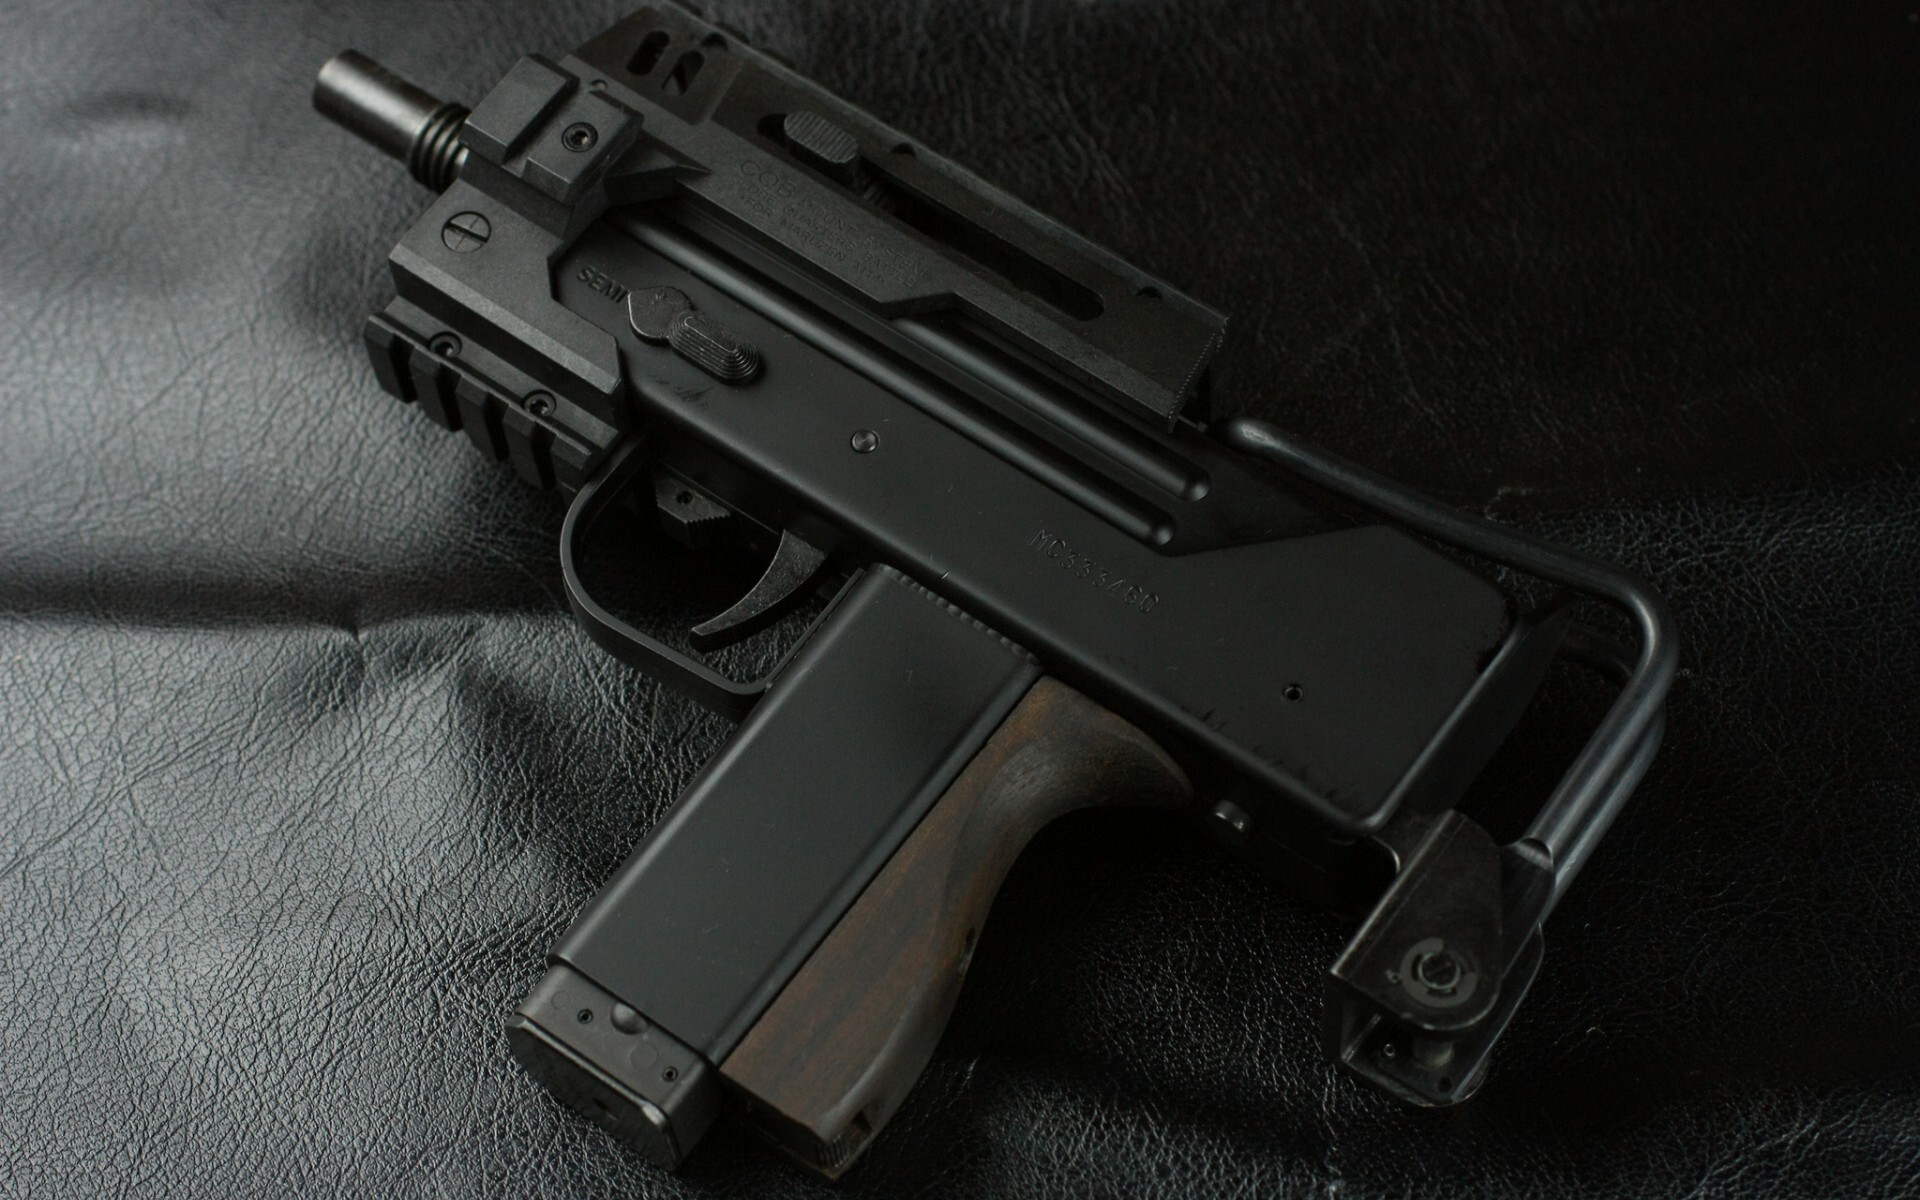 SMG Weapon Gun HD Wallpapers